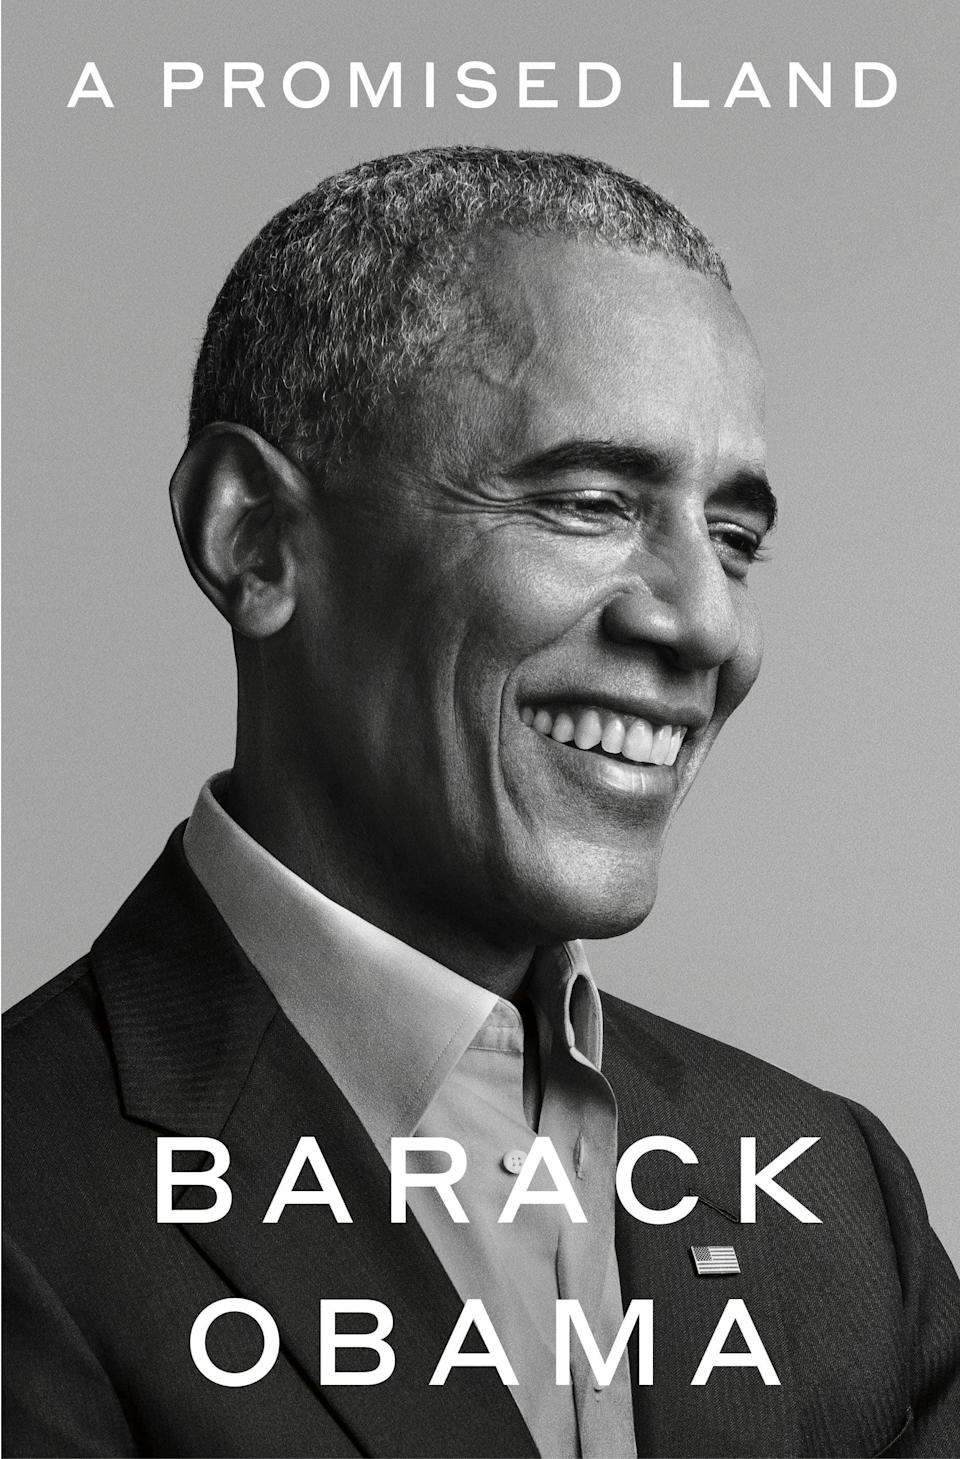 <p>Former President Barack Obama's highly anticipated memoir, <span><strong>A Promised Land</strong></span>, will take readers inside his storied political career from his earliest forays into politics to his first term in the White House. In his own words, Obama is giving readers a front-row seat to history as he opens up about what it was like to hold the most powerful office in the land.</p> <p><em>Out Nov. 17</em></p>